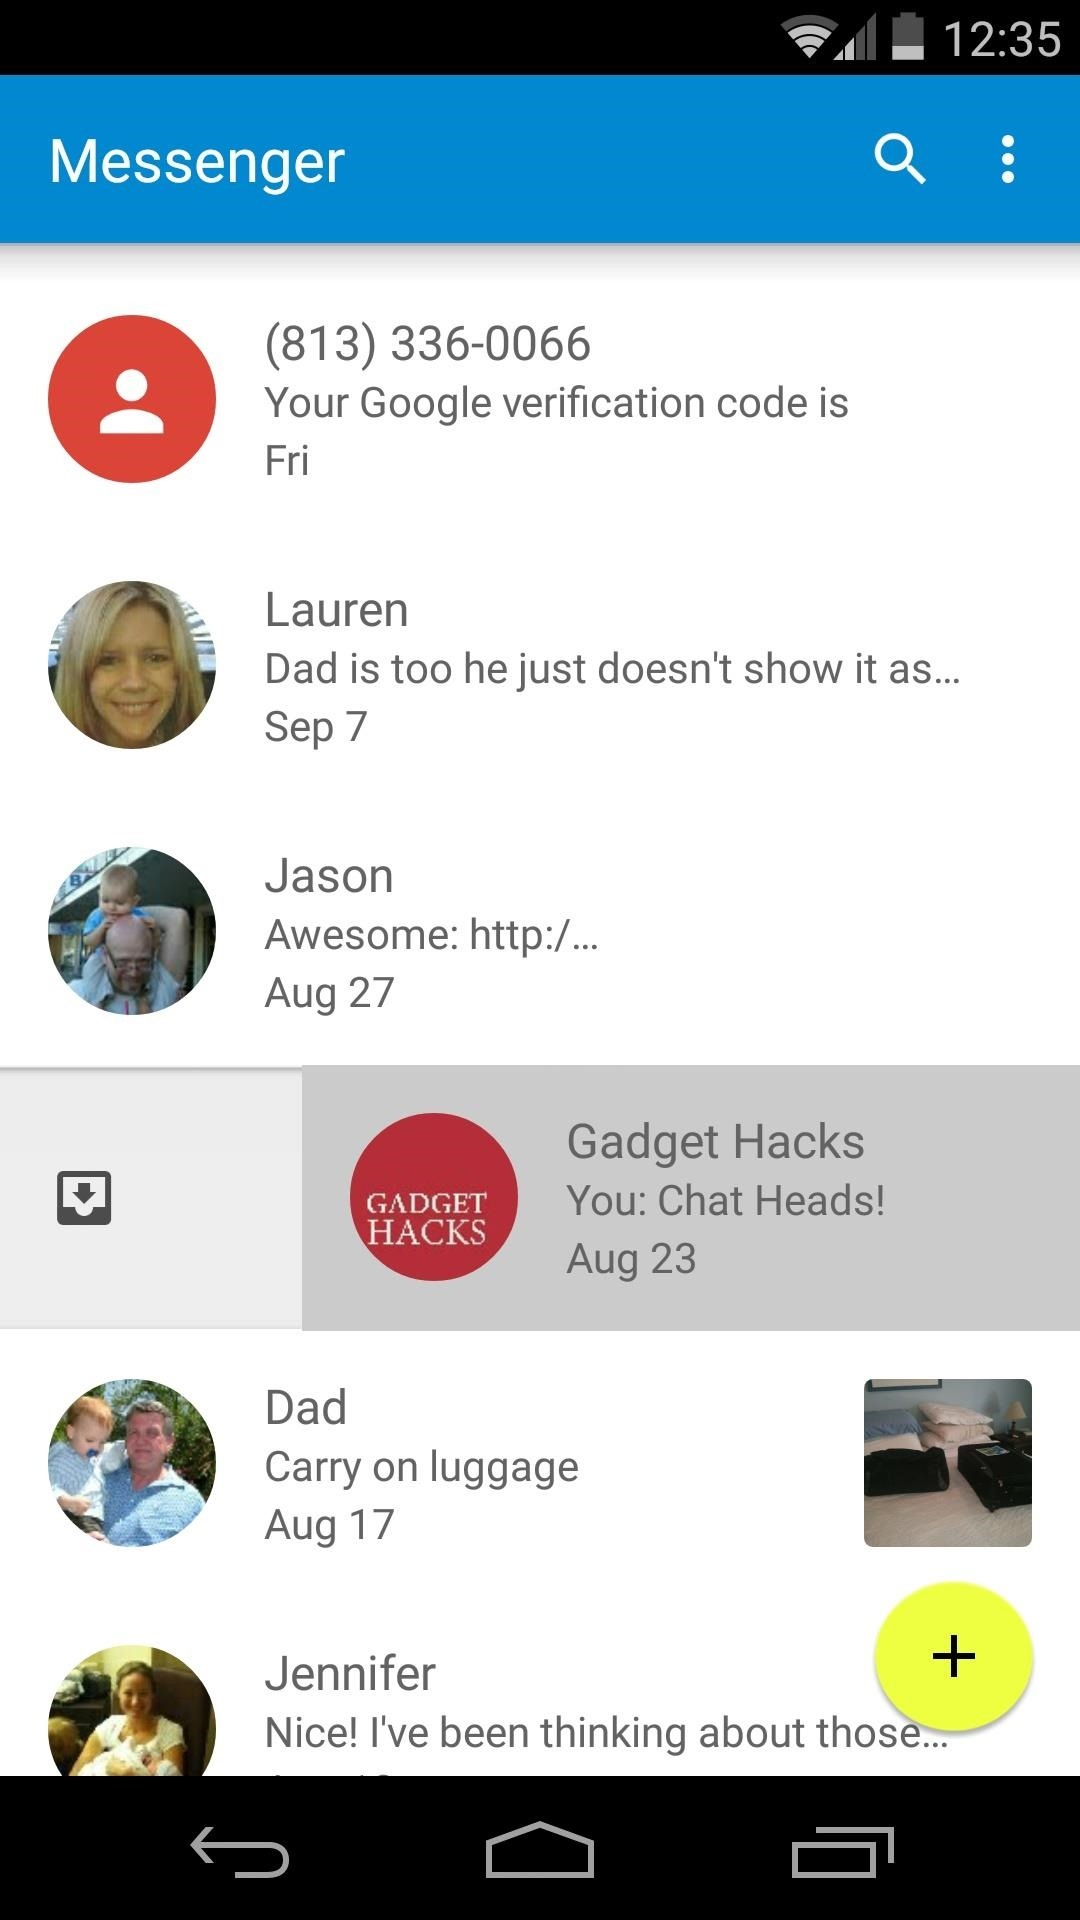 Install the Android 5.0 Lollipop Messenger App on KitKat